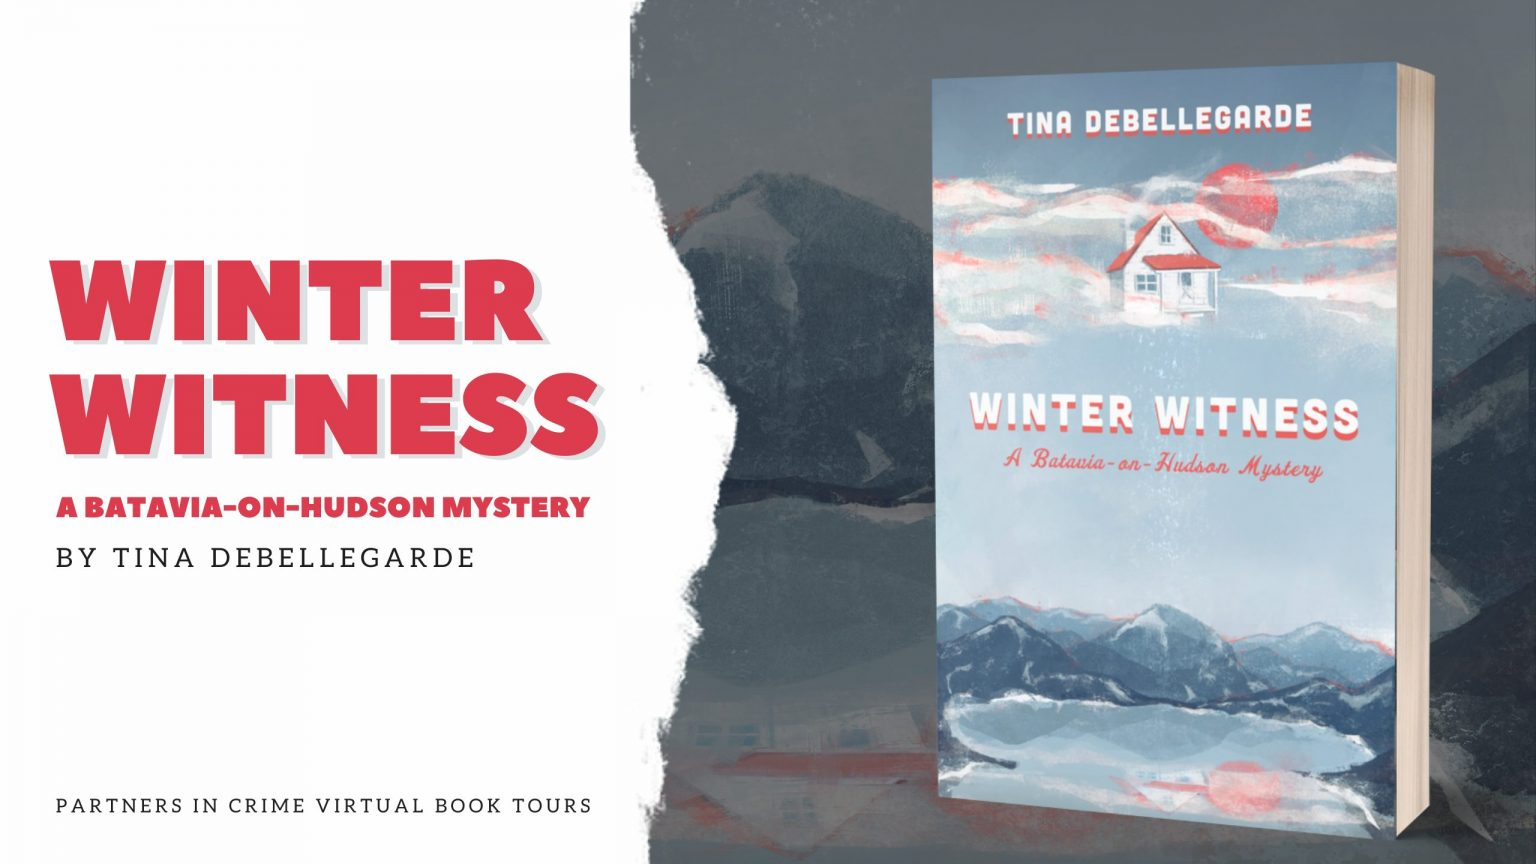 Winter Witness by Tina deBellegarde Banner